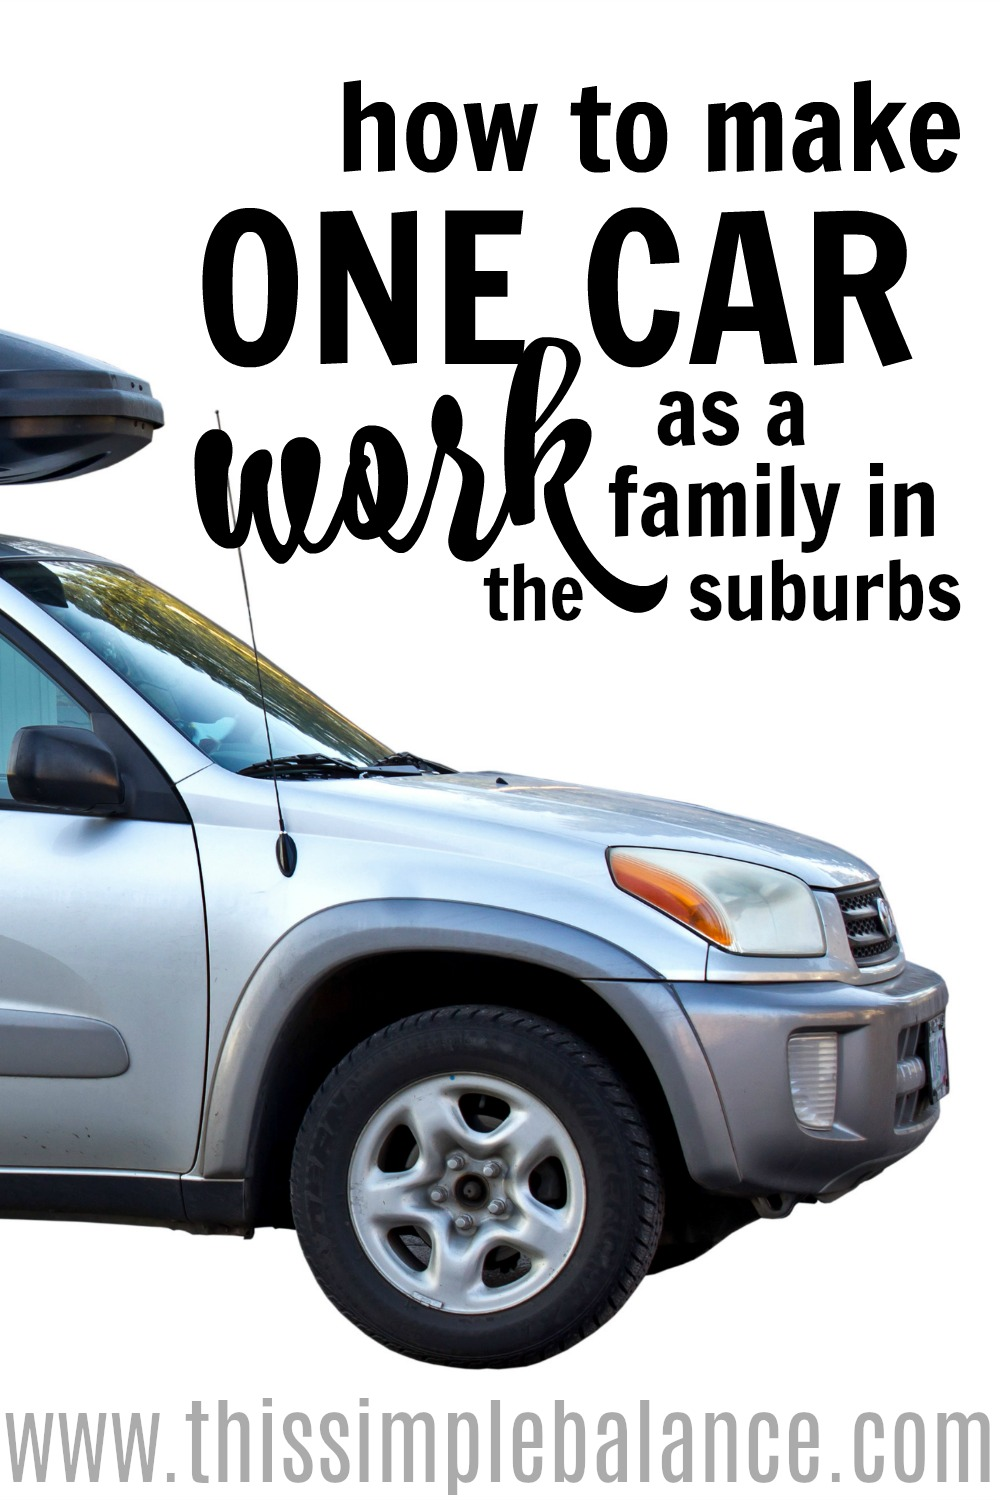 Wondering if being a one car family can actually work - even in the suburbs? You can go without a second car (yes - even in America! even with a family!). Learn why you should consider it and how to make it work. #frugallivingtips